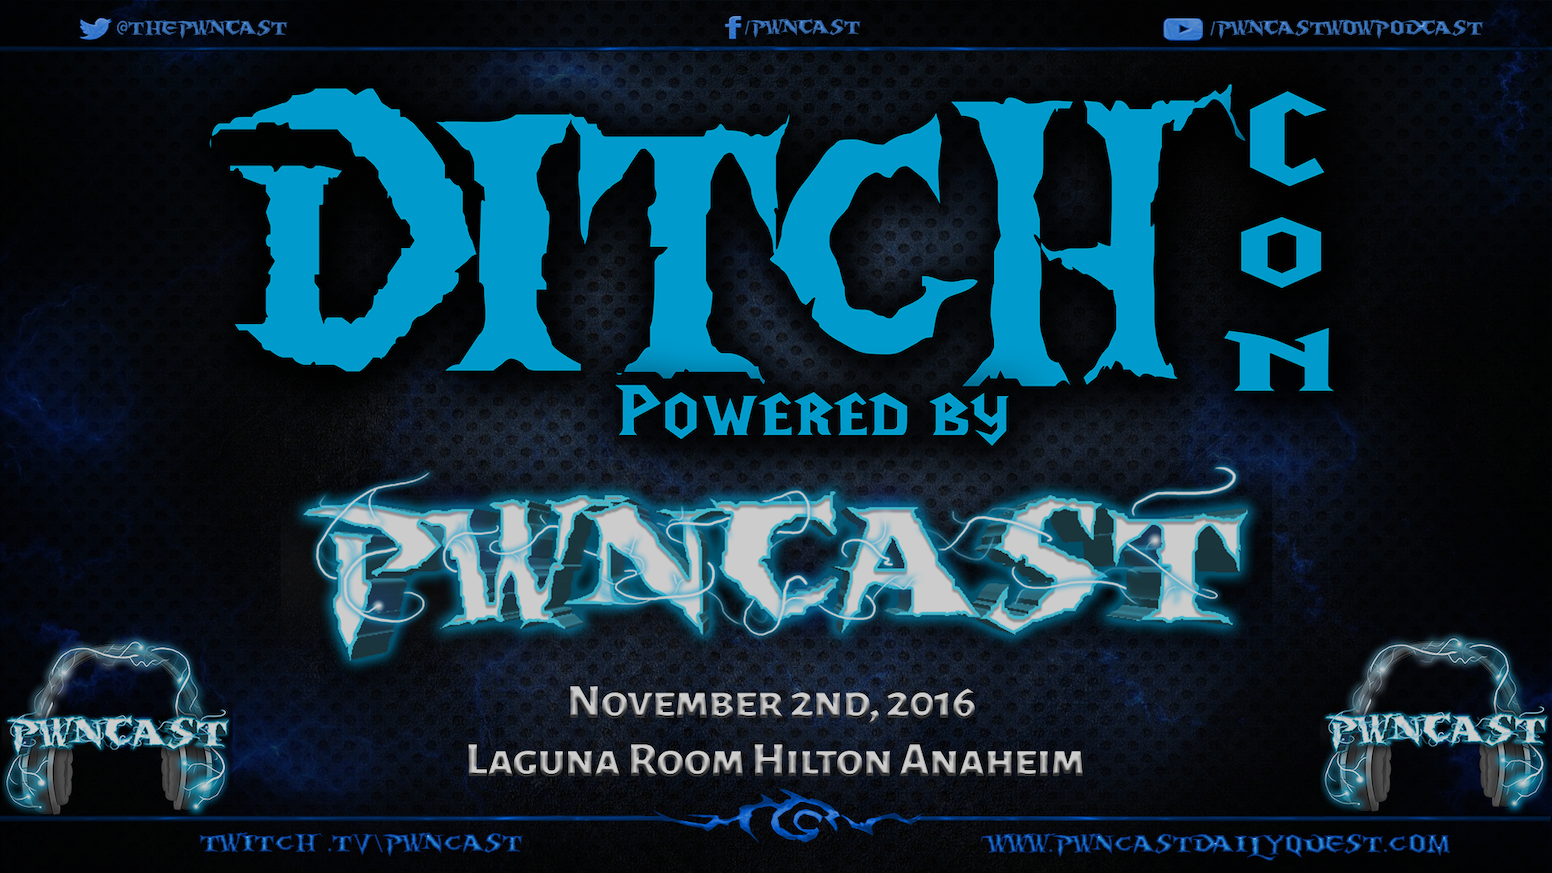 DitchCon 2016 BlizzCon party @ The Hilton. The Party is Free Admission. This party is a Ditch Free Zone. Dancing, drinks and gamers.